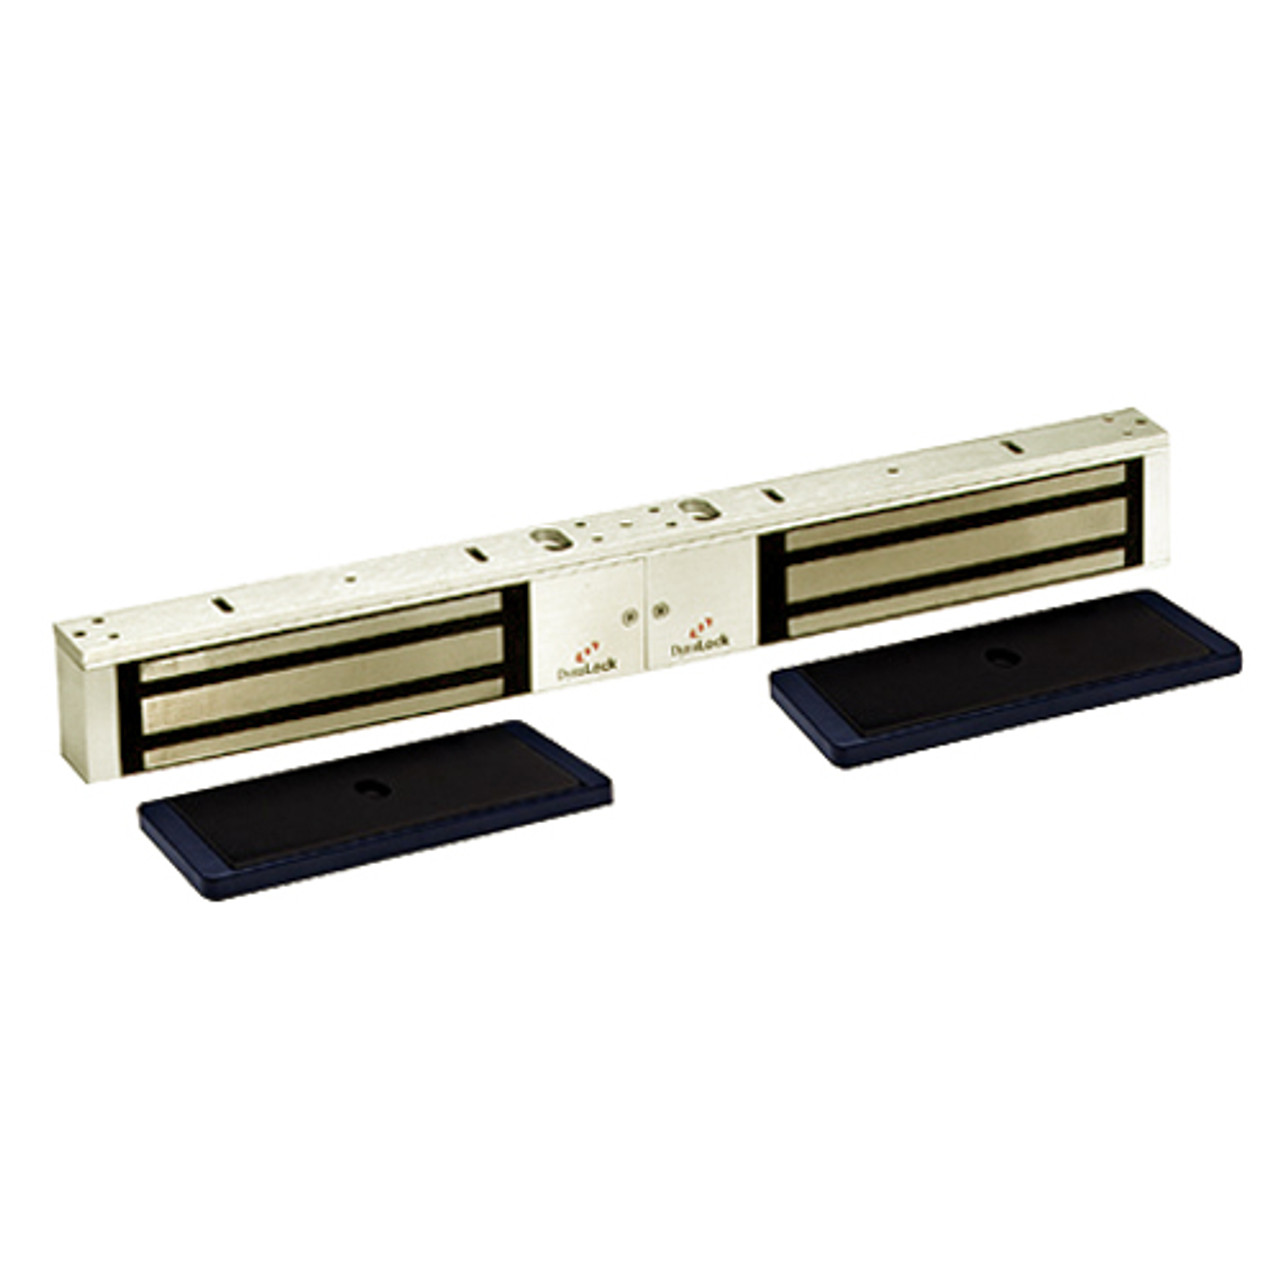 2022-US4-DSM2 DynaLock 2000 Series 1200 LB Holding Force Double Electromagnetic Lock with Door Status Switch in Satin Brass